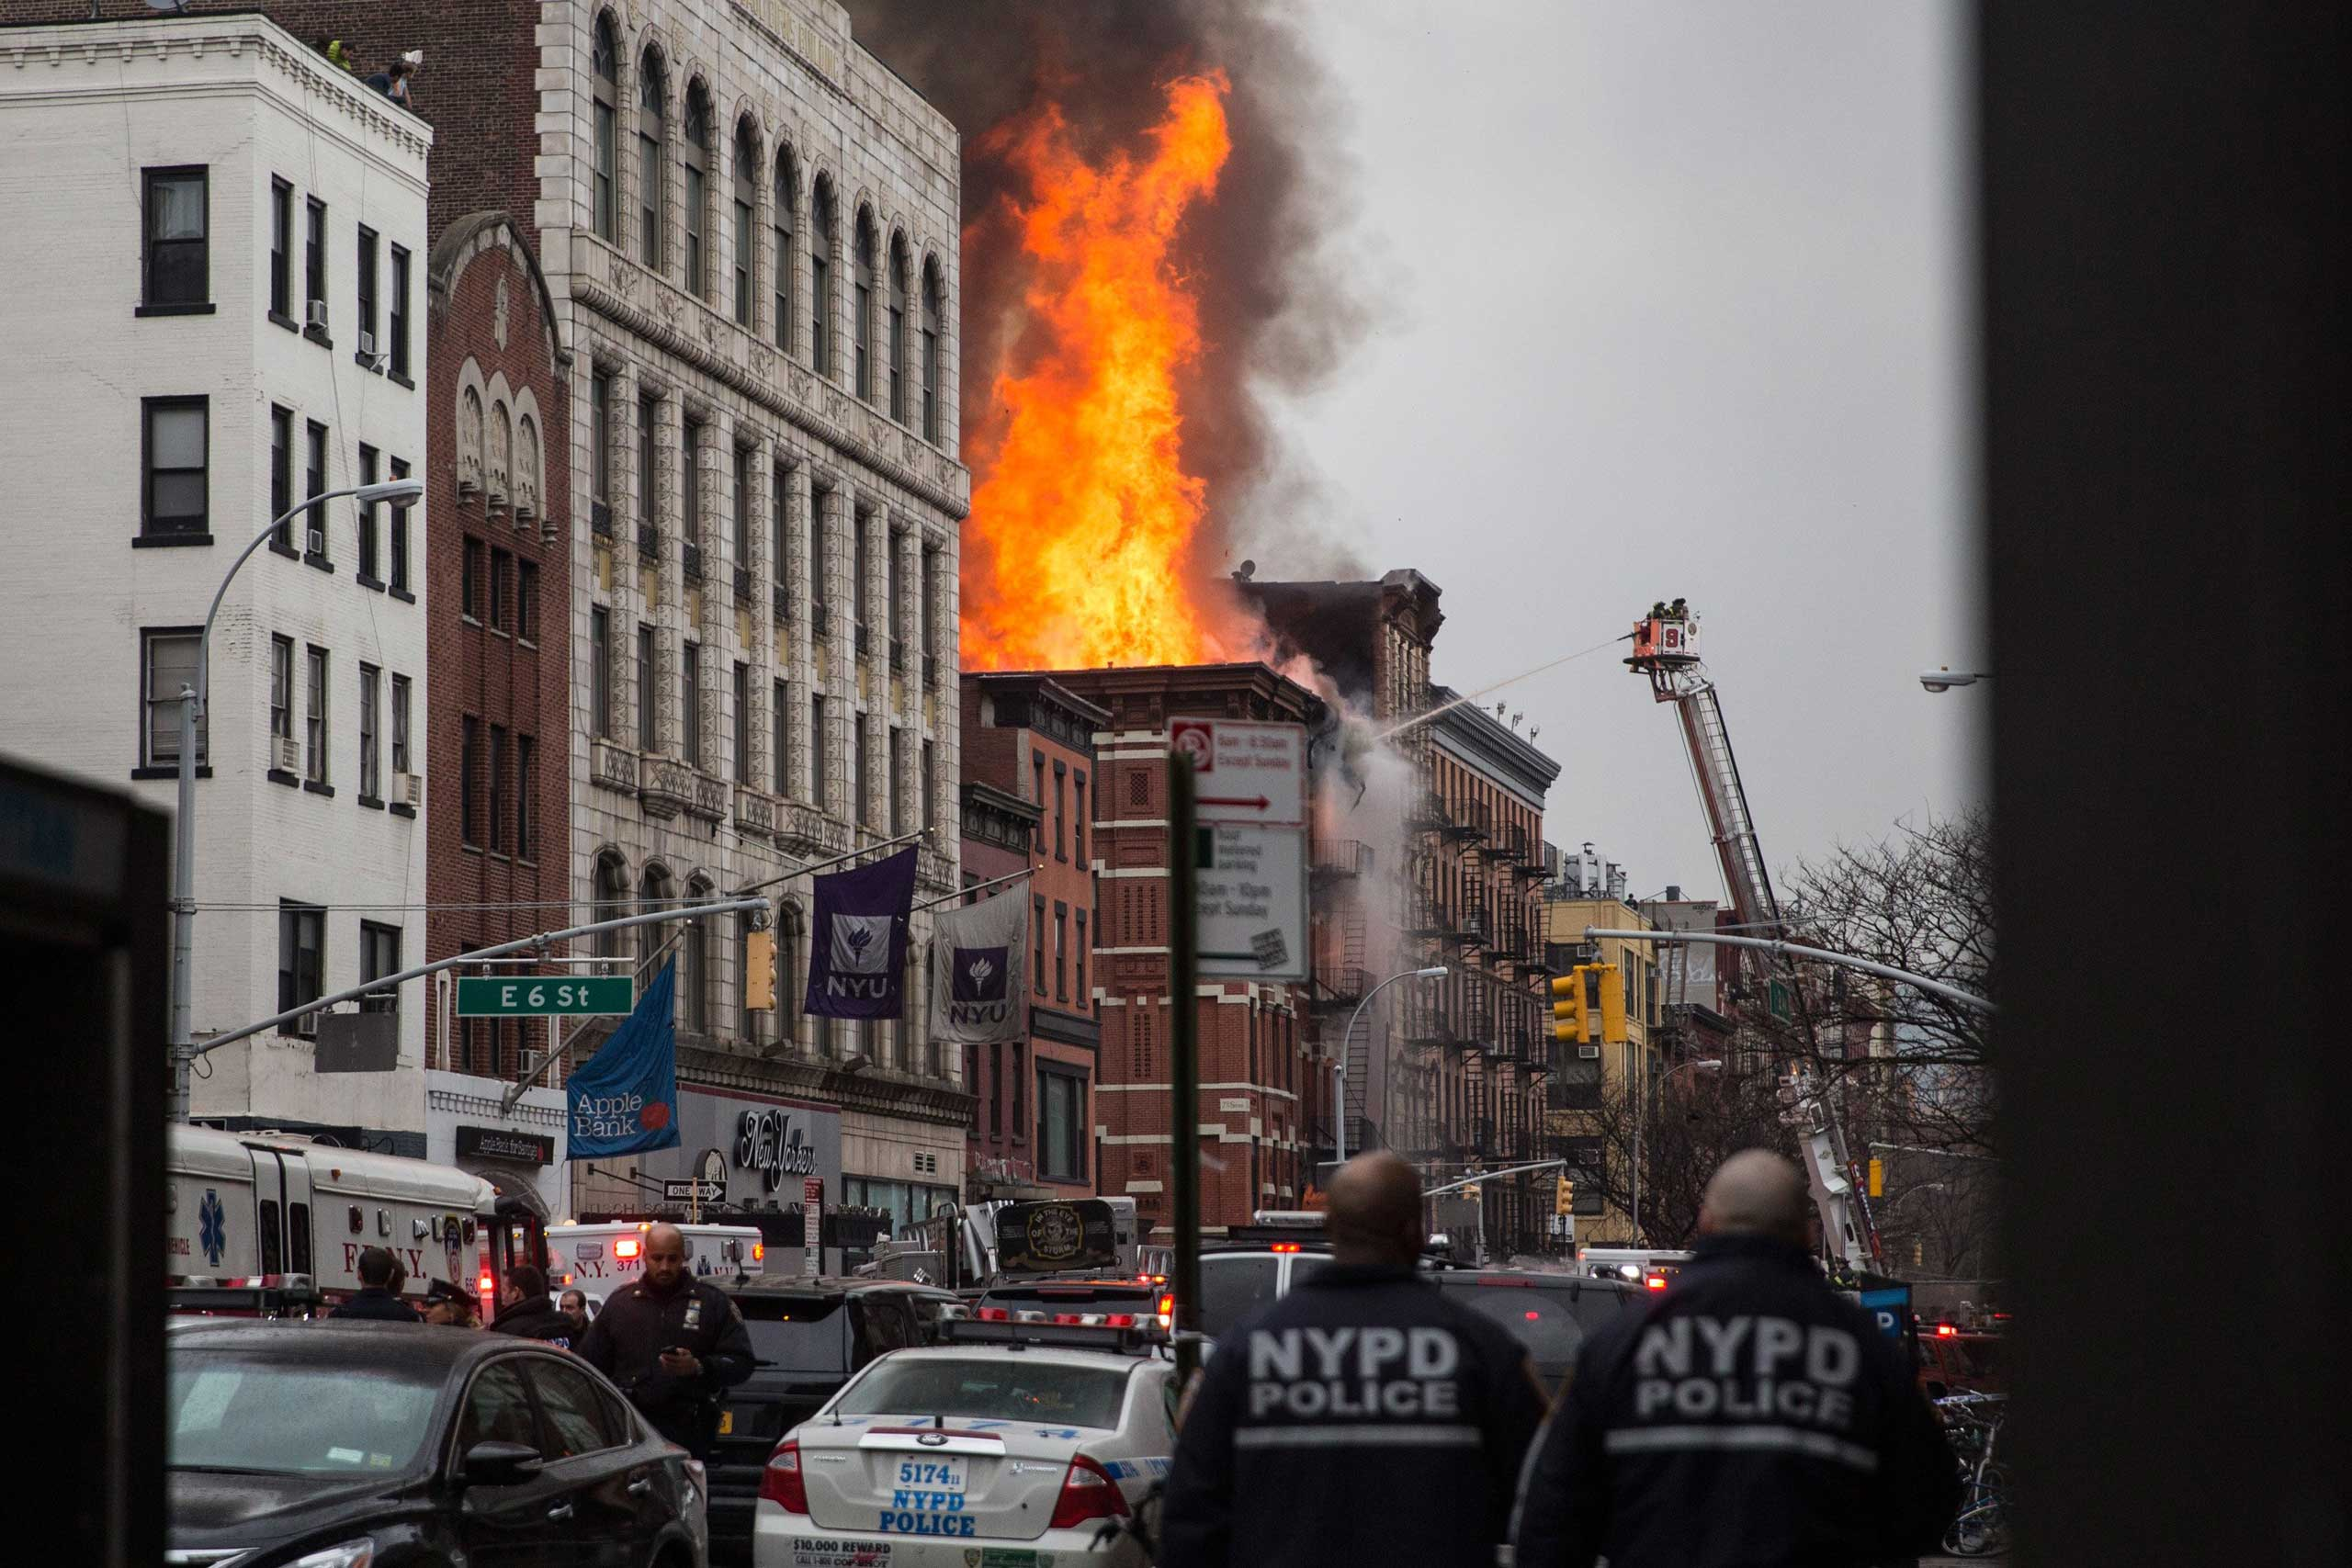 A building on 2nd Avenue burns after a collapse in the East Village section of New York City on March 26, 2015.